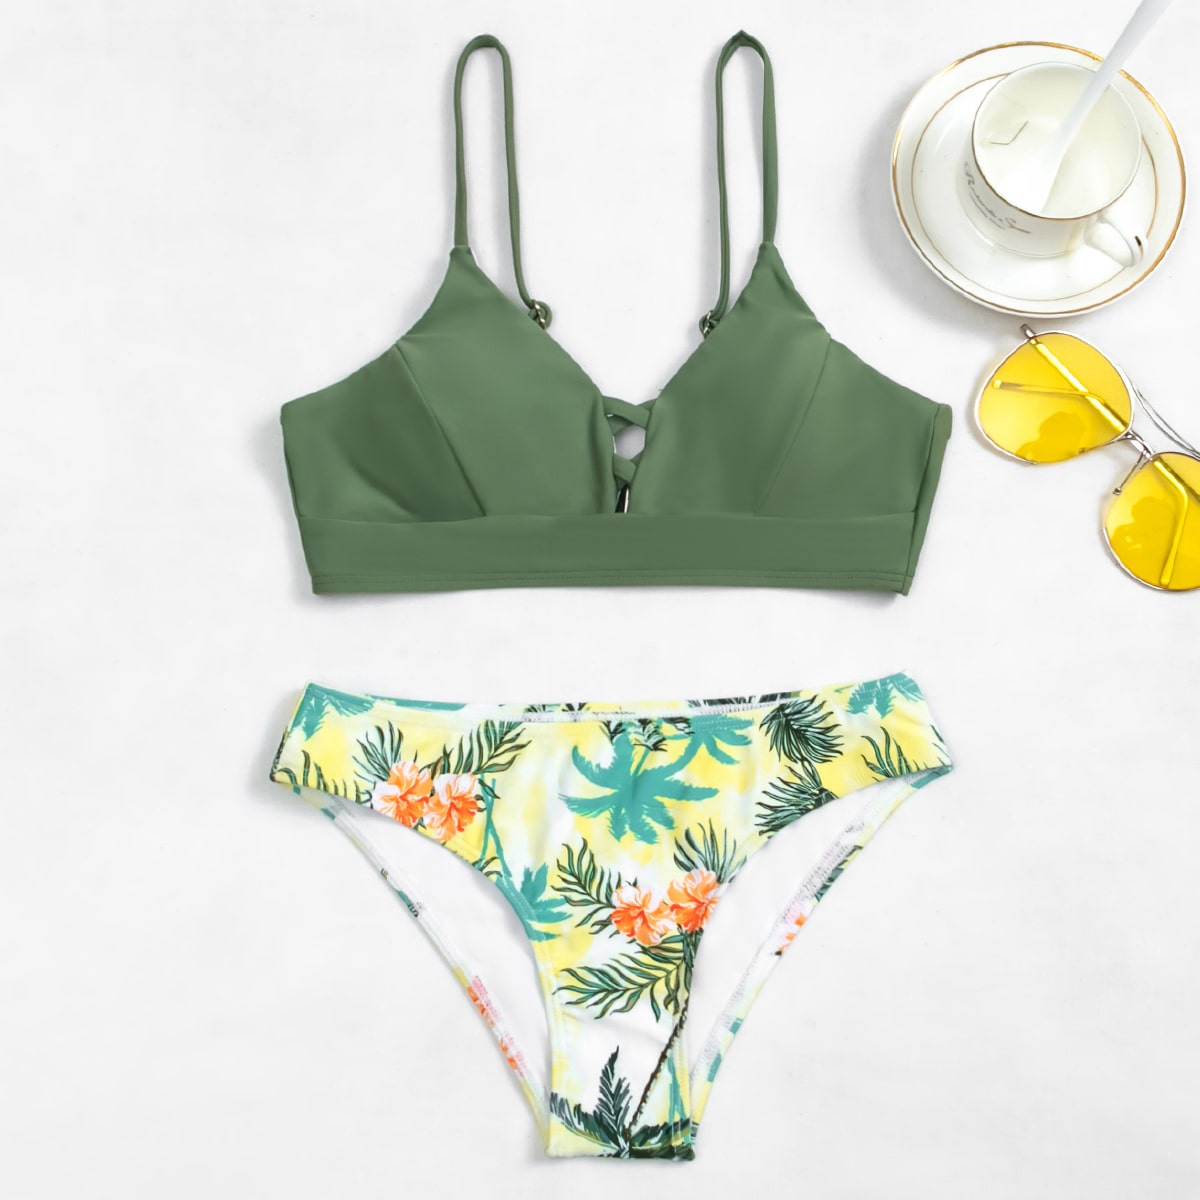 SHEIN / Floral & Tropical Crisscross Bikini Swimsuit